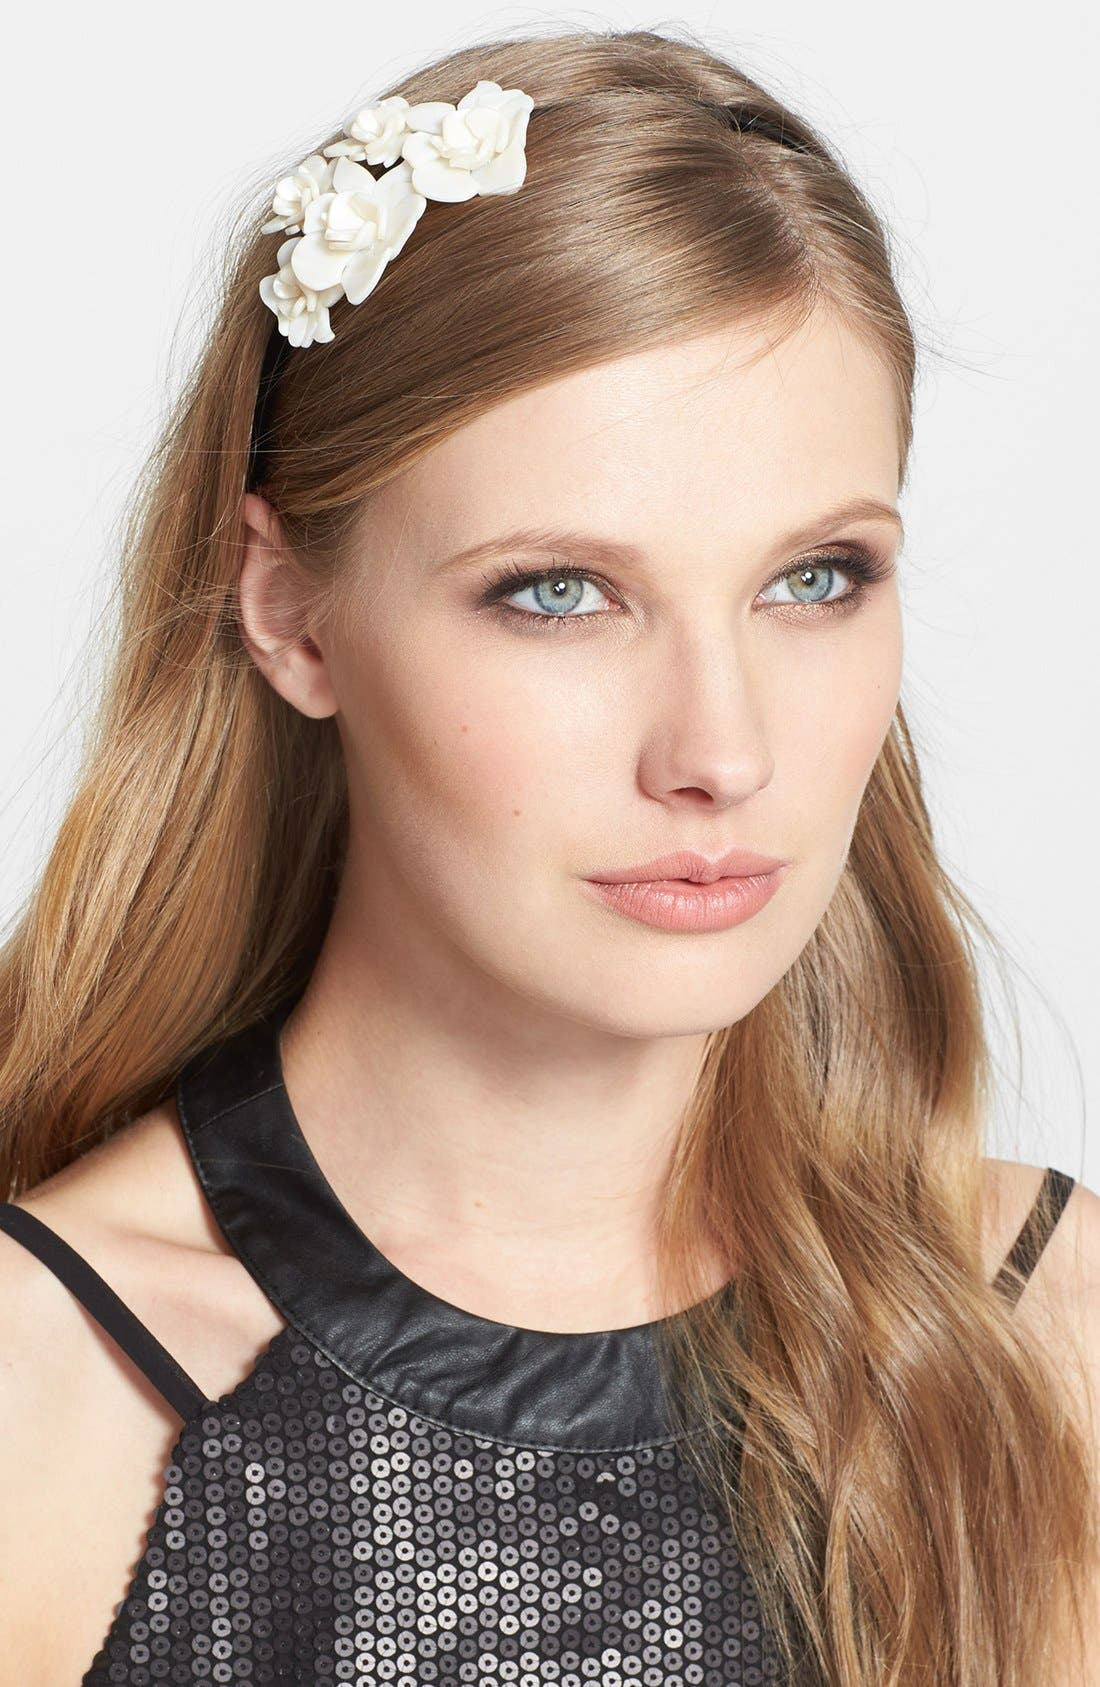 'GIVERNY ROSE' HEADBAND